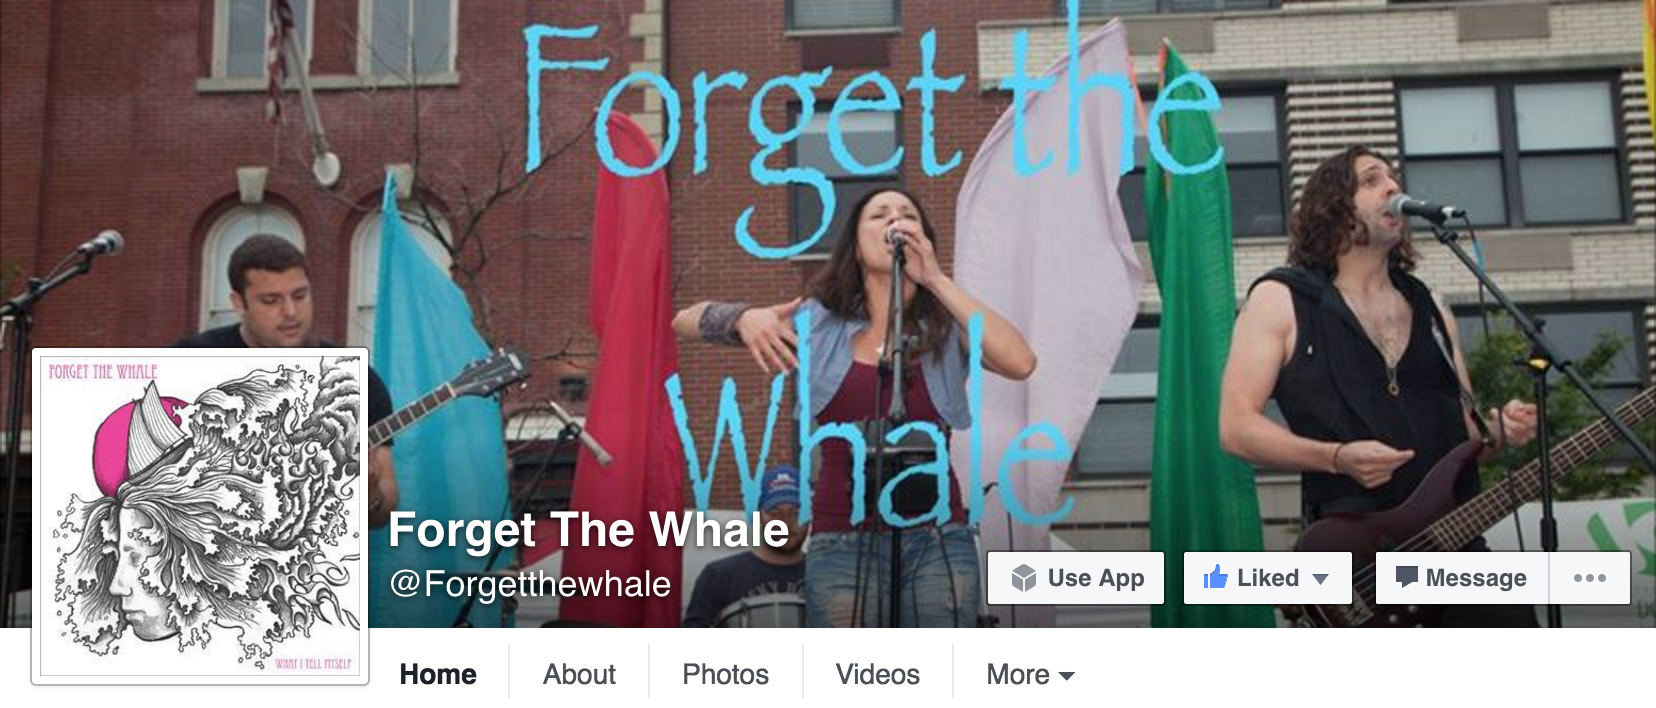 facebook.com/Forgetthewhale